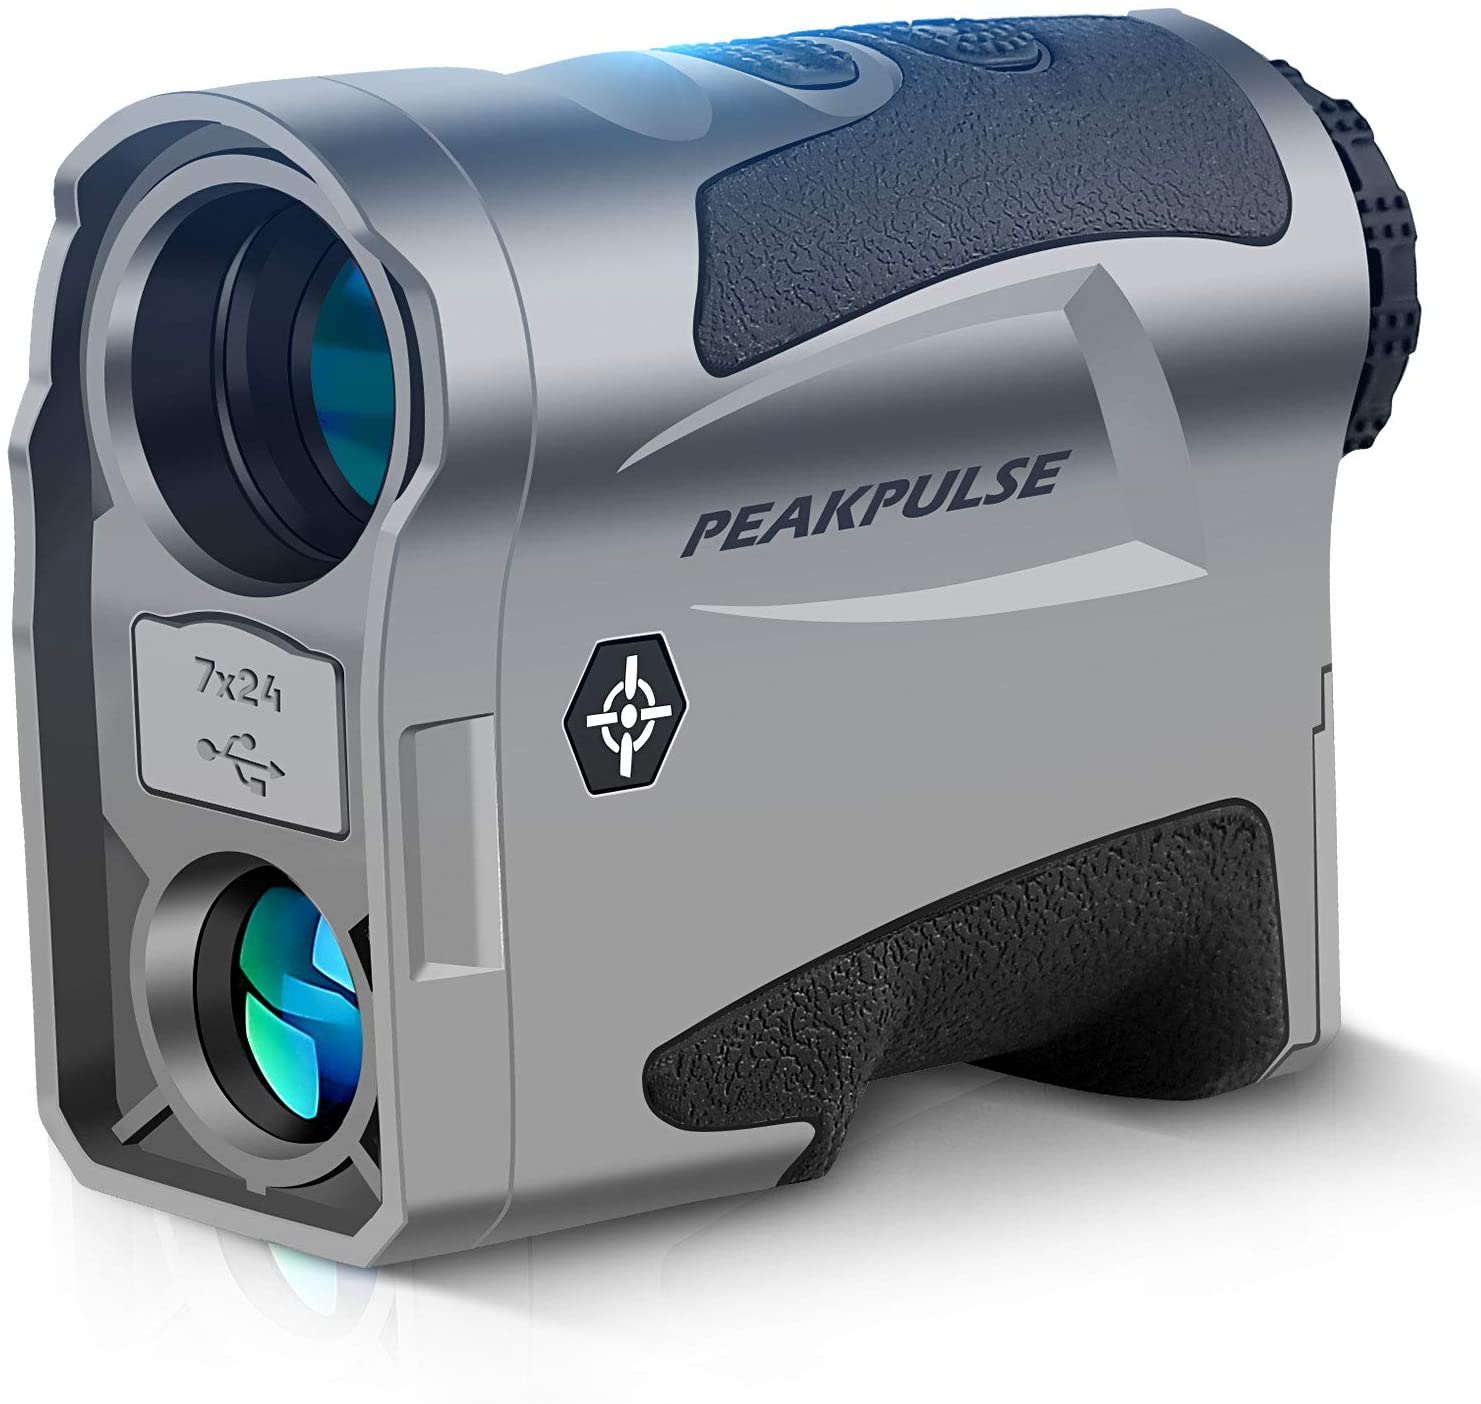 PEAKPULSE MA1000AG Golf and Hunting Dual-Mode Rangefinder, Golf Mode with Slope-Switch Technology, Flag Acquisition with Pulse Vibration Technology, Hunting Mode has a Range of 1000 Yards.